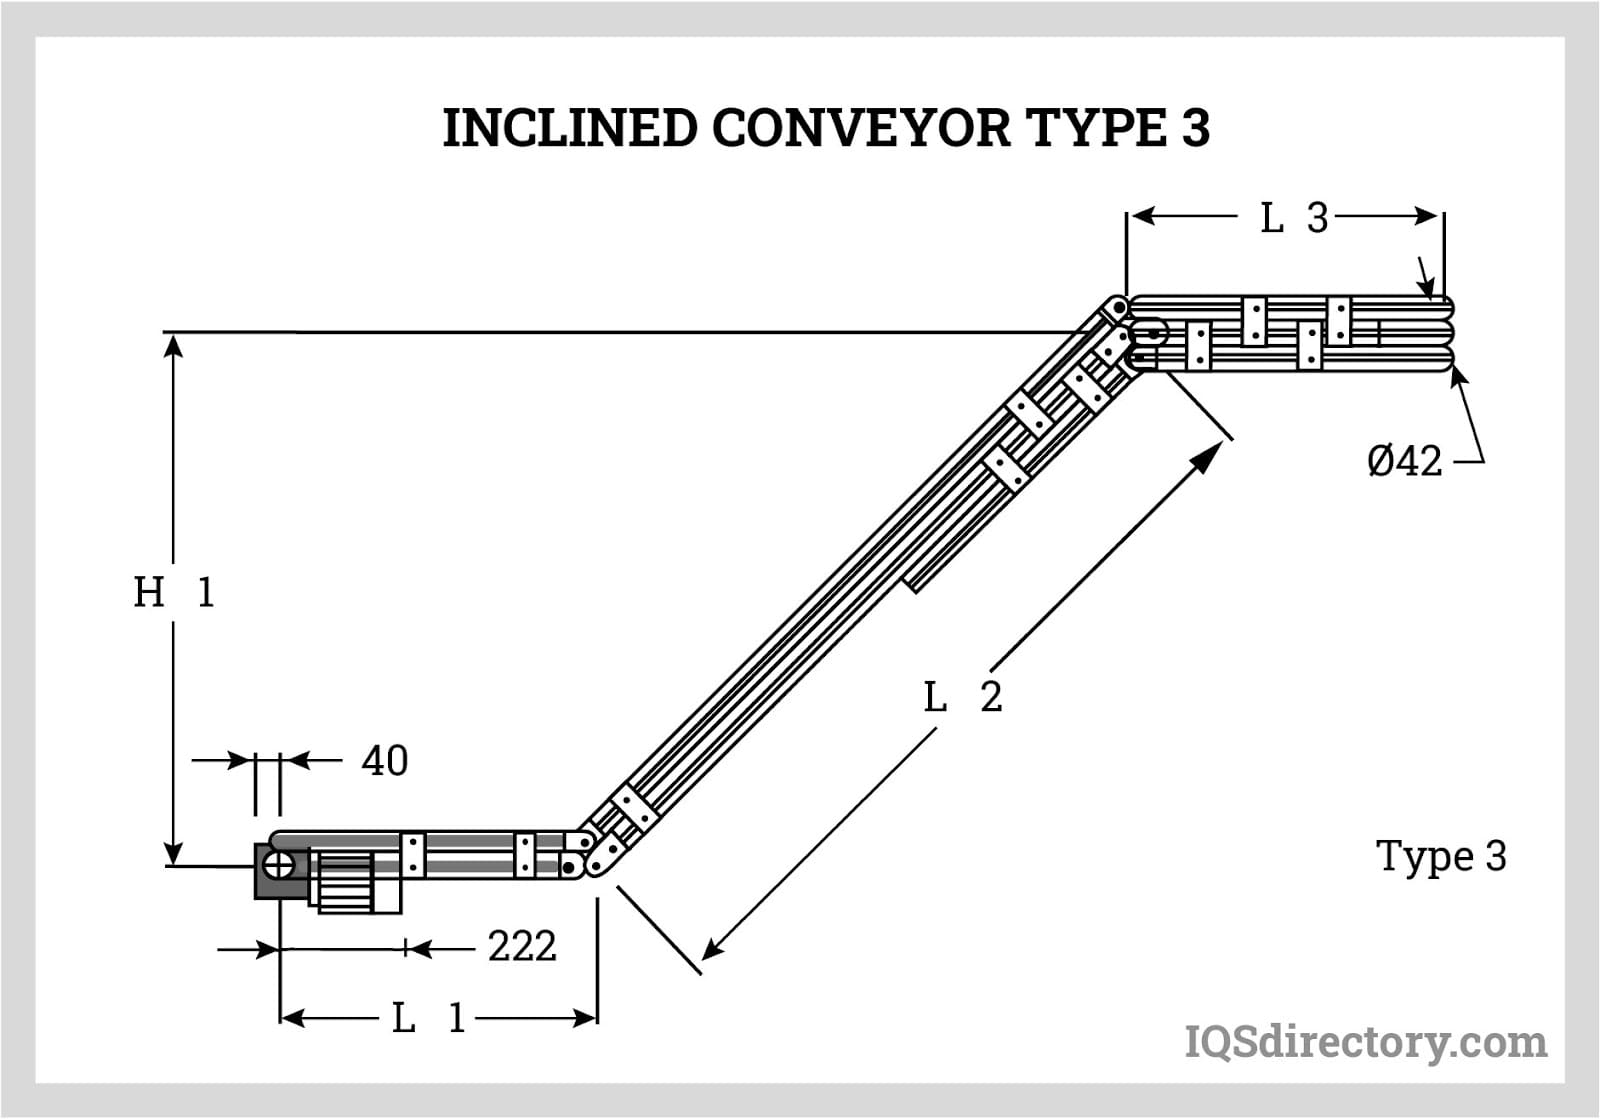 Inclined Conveyor Type 3